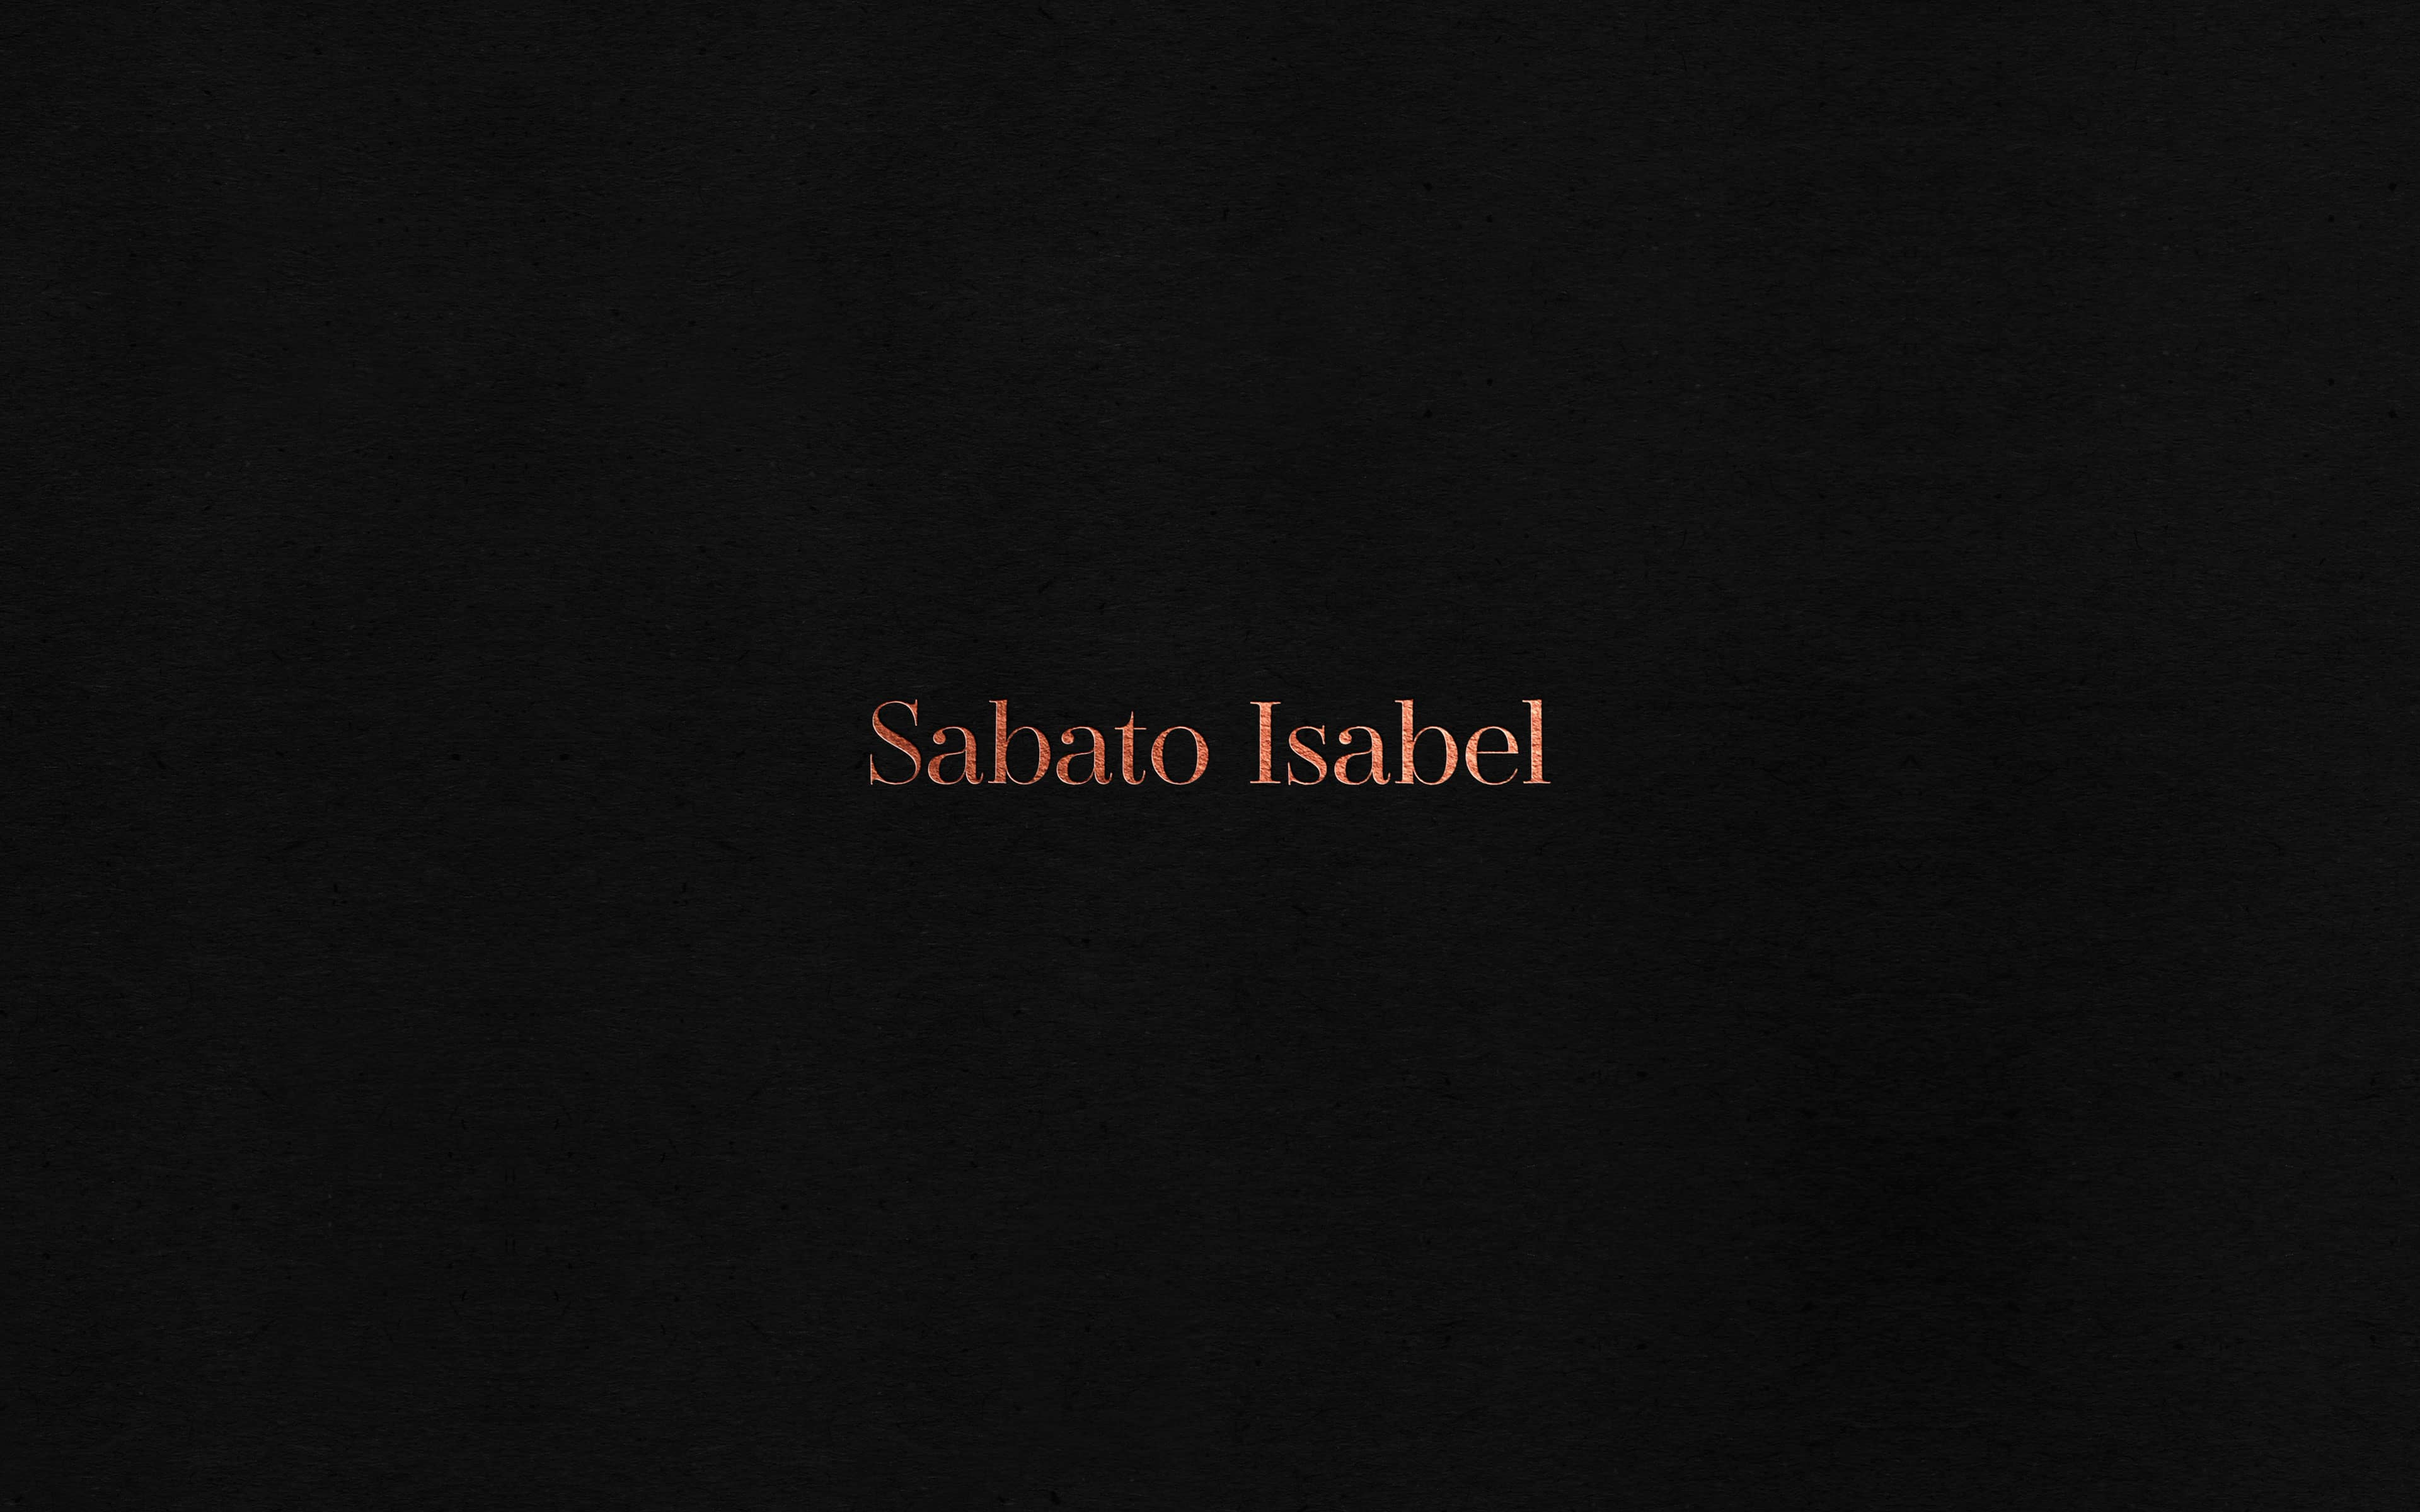 Sabato Isabel. Name. Design Agency.